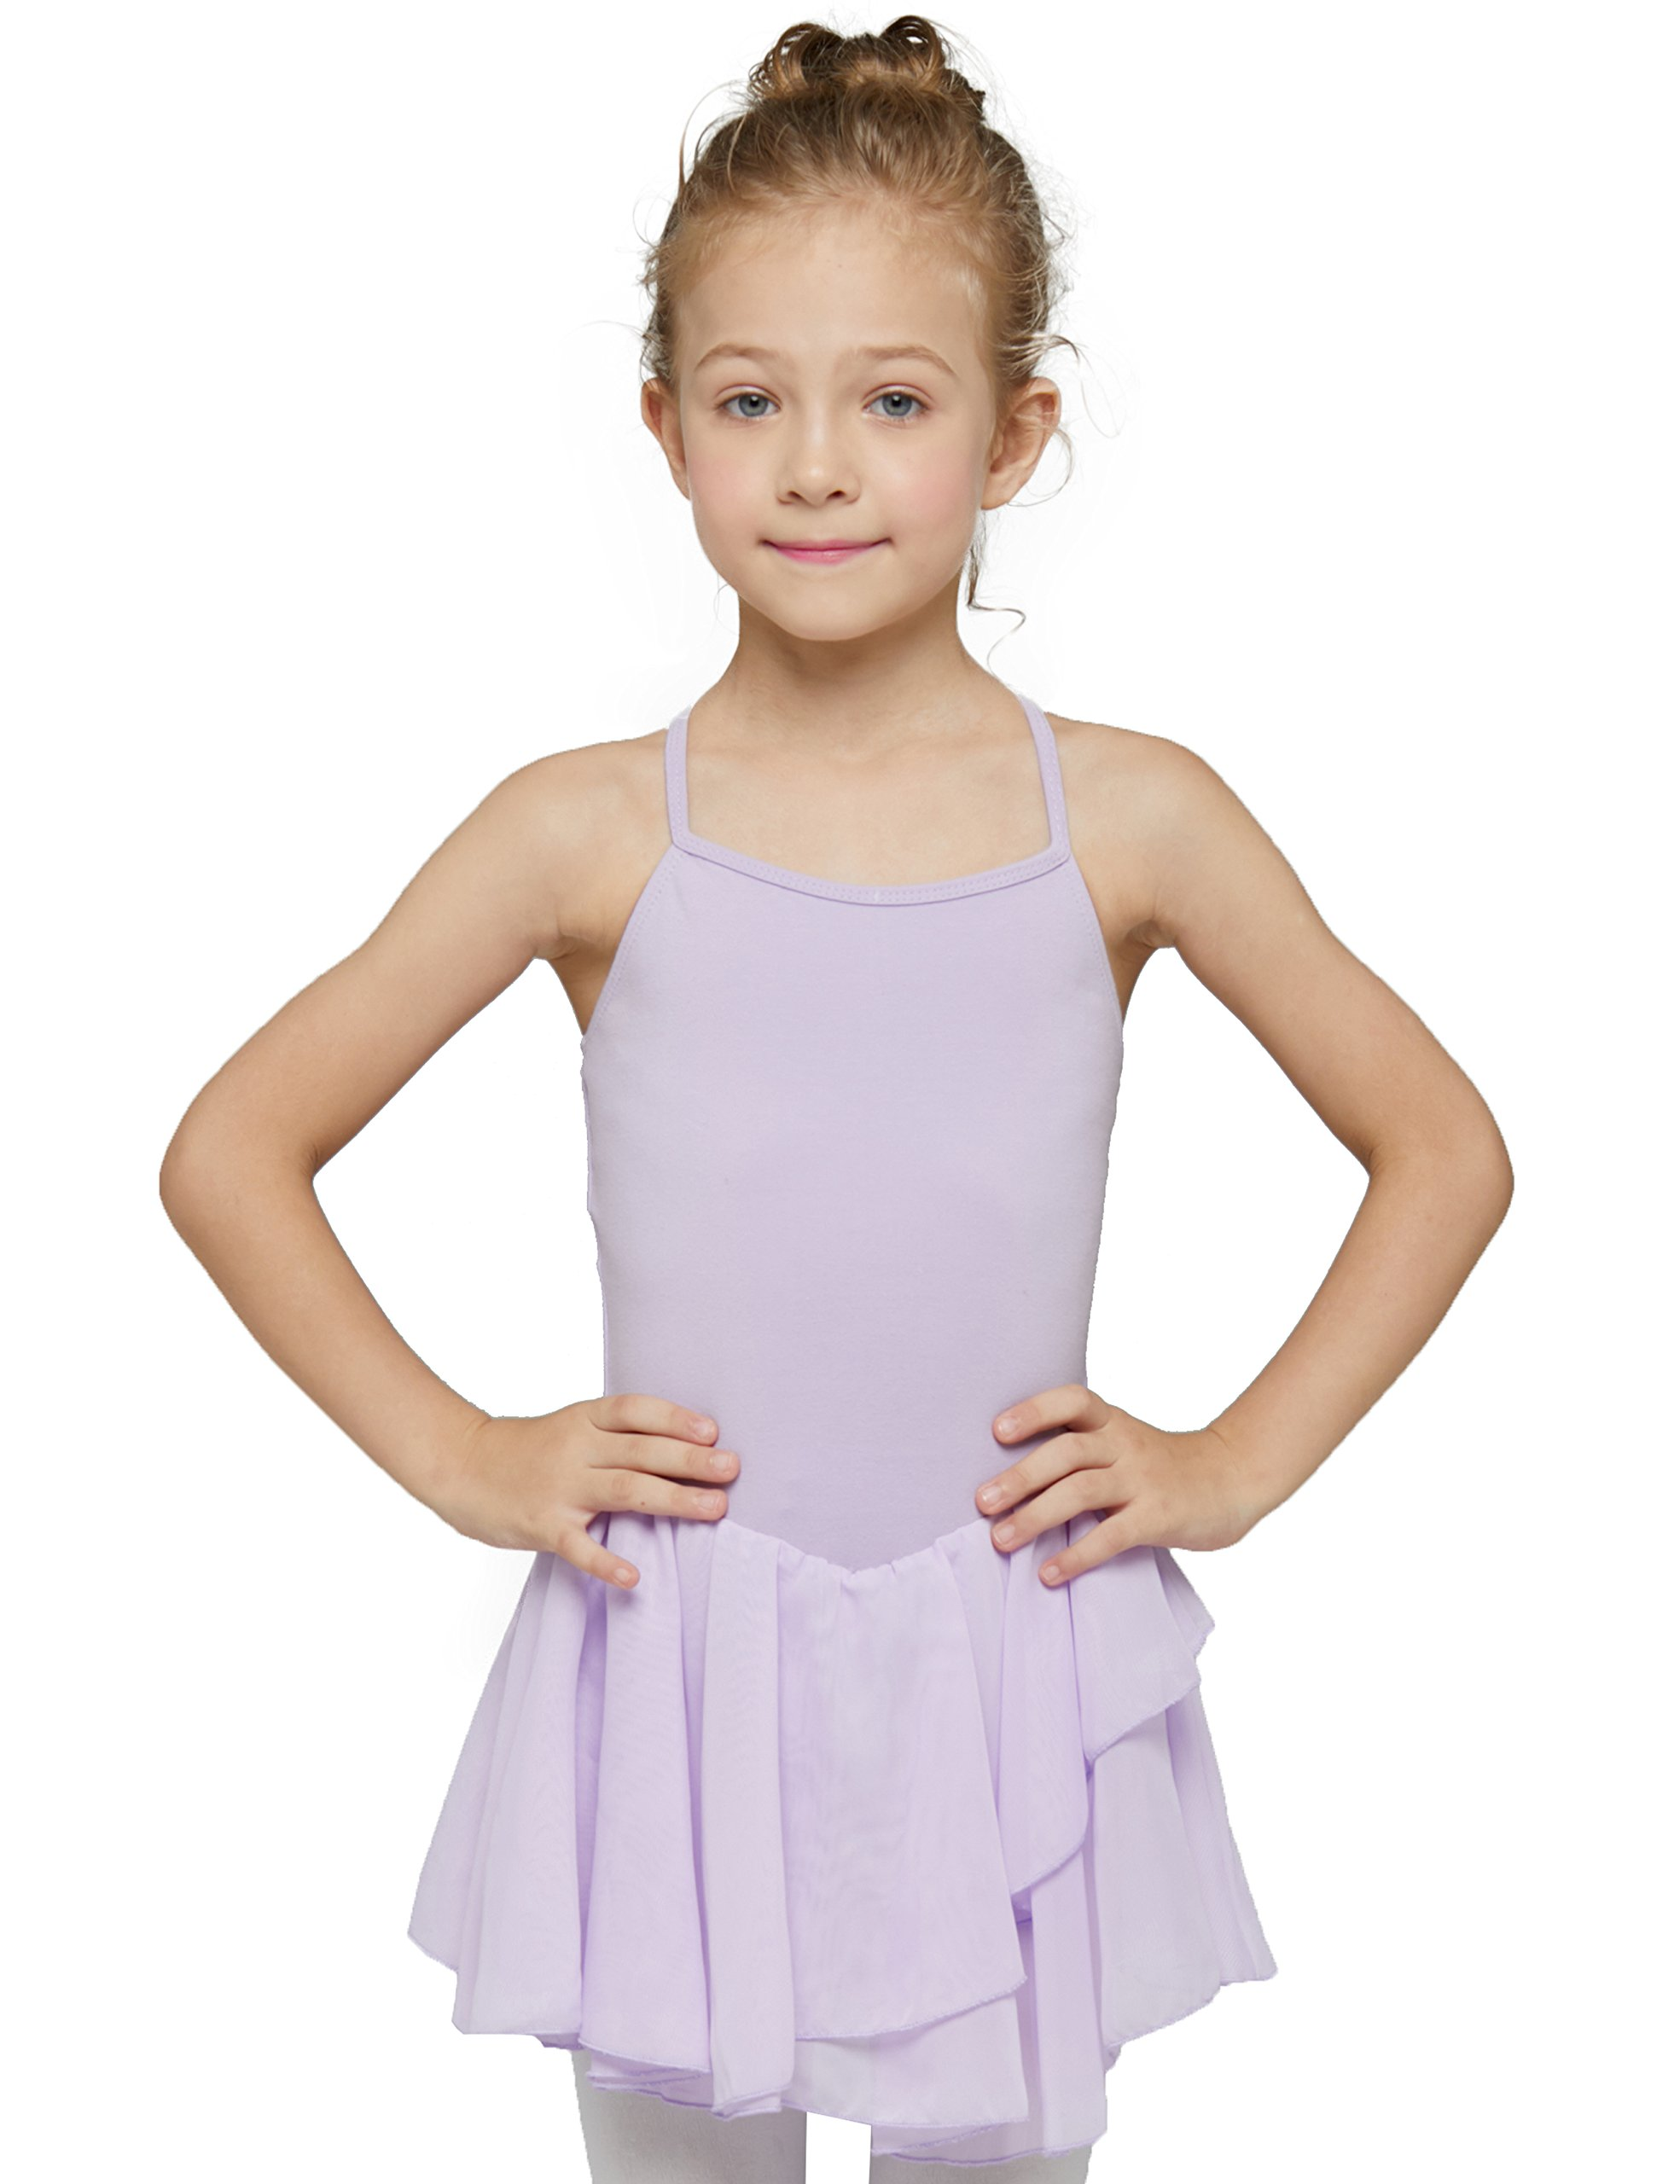 MdnMd Camisole Skirted Leotard for Girls by (Tag 120) Age 4-6, Lilac Purple